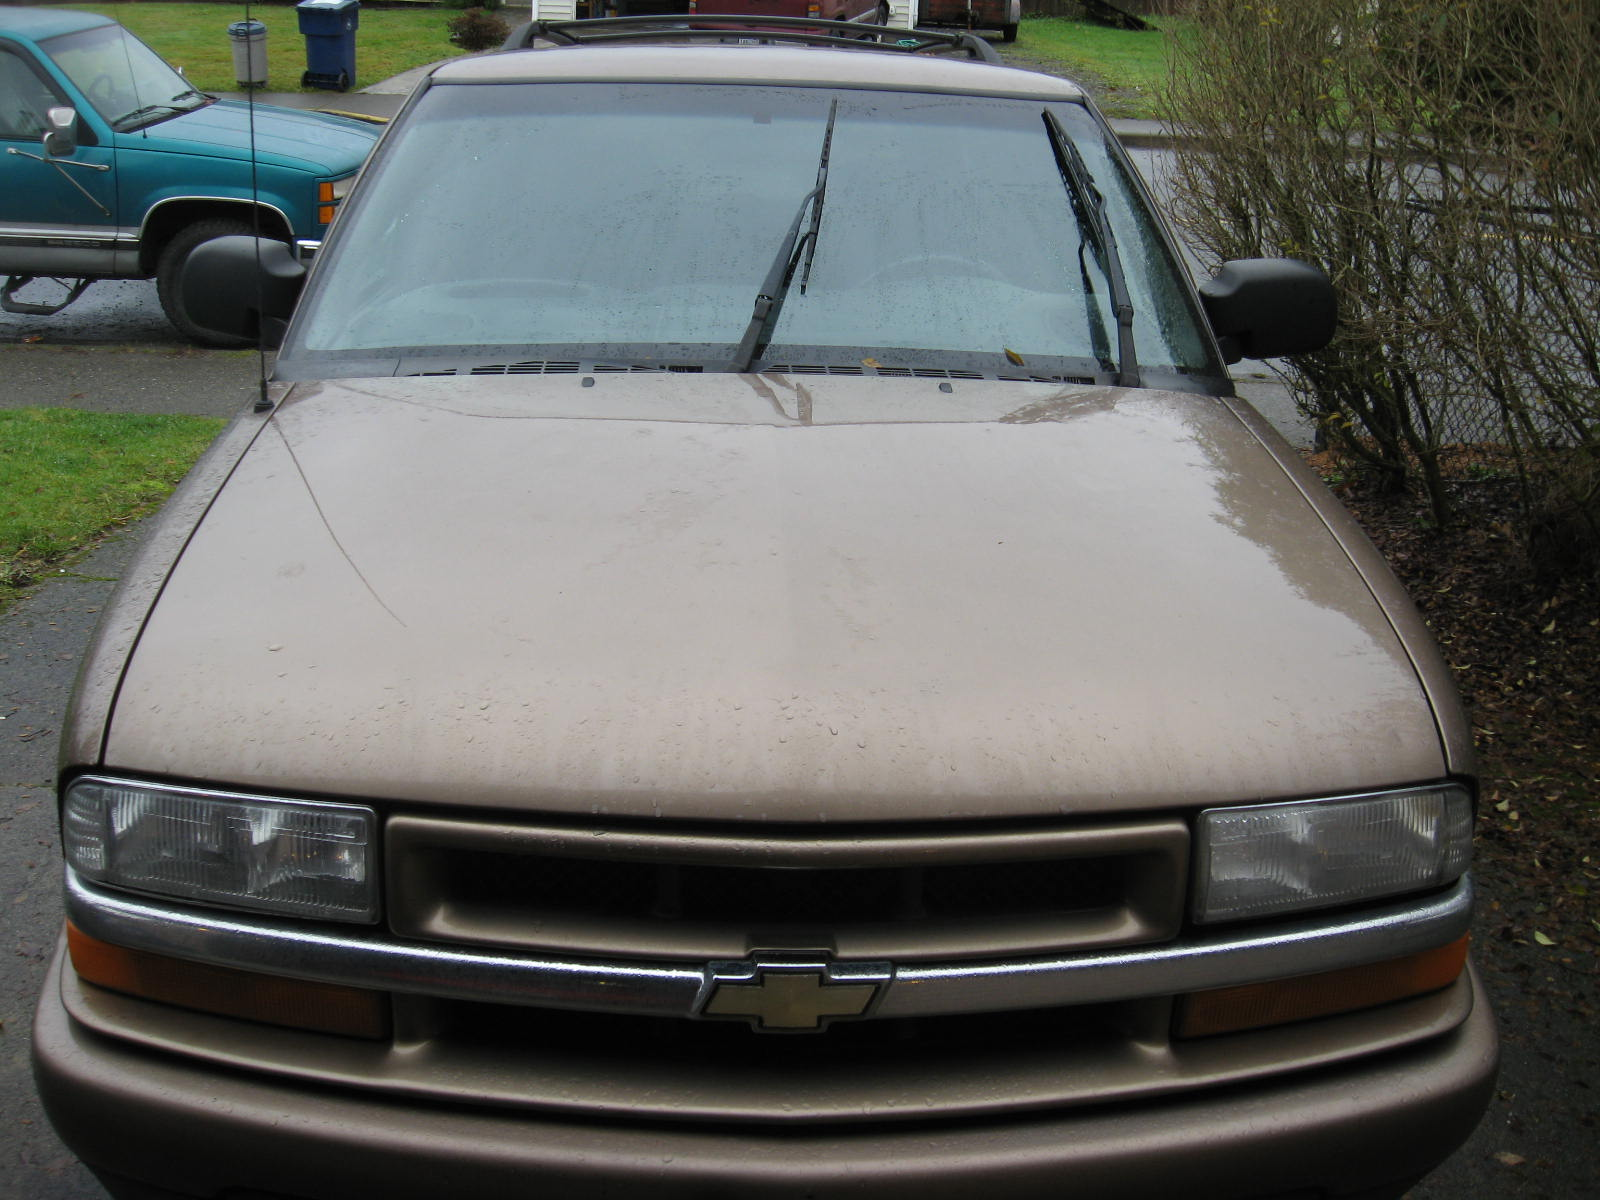 Home n Auto   2002 Chevrolet Blazer Stumbling and Dying   Fuel